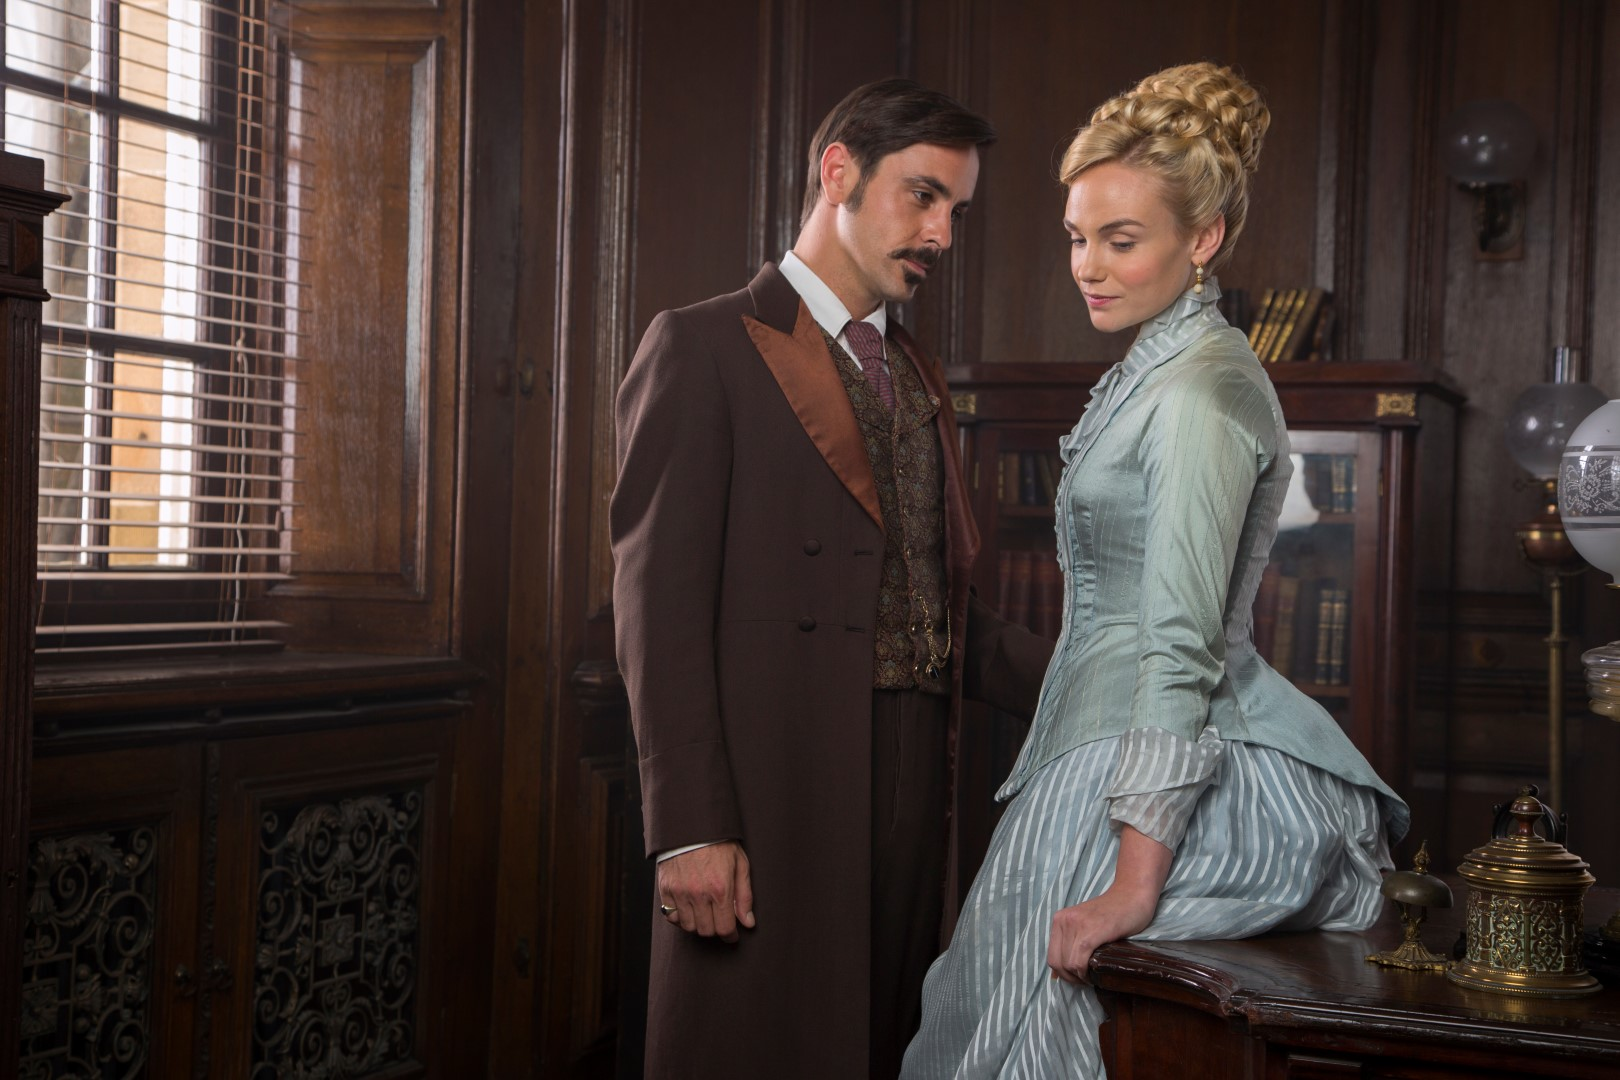 Picture shows: Moray (EMUN ELLIOTT) and Denise (JOANNA VANDERHAM)